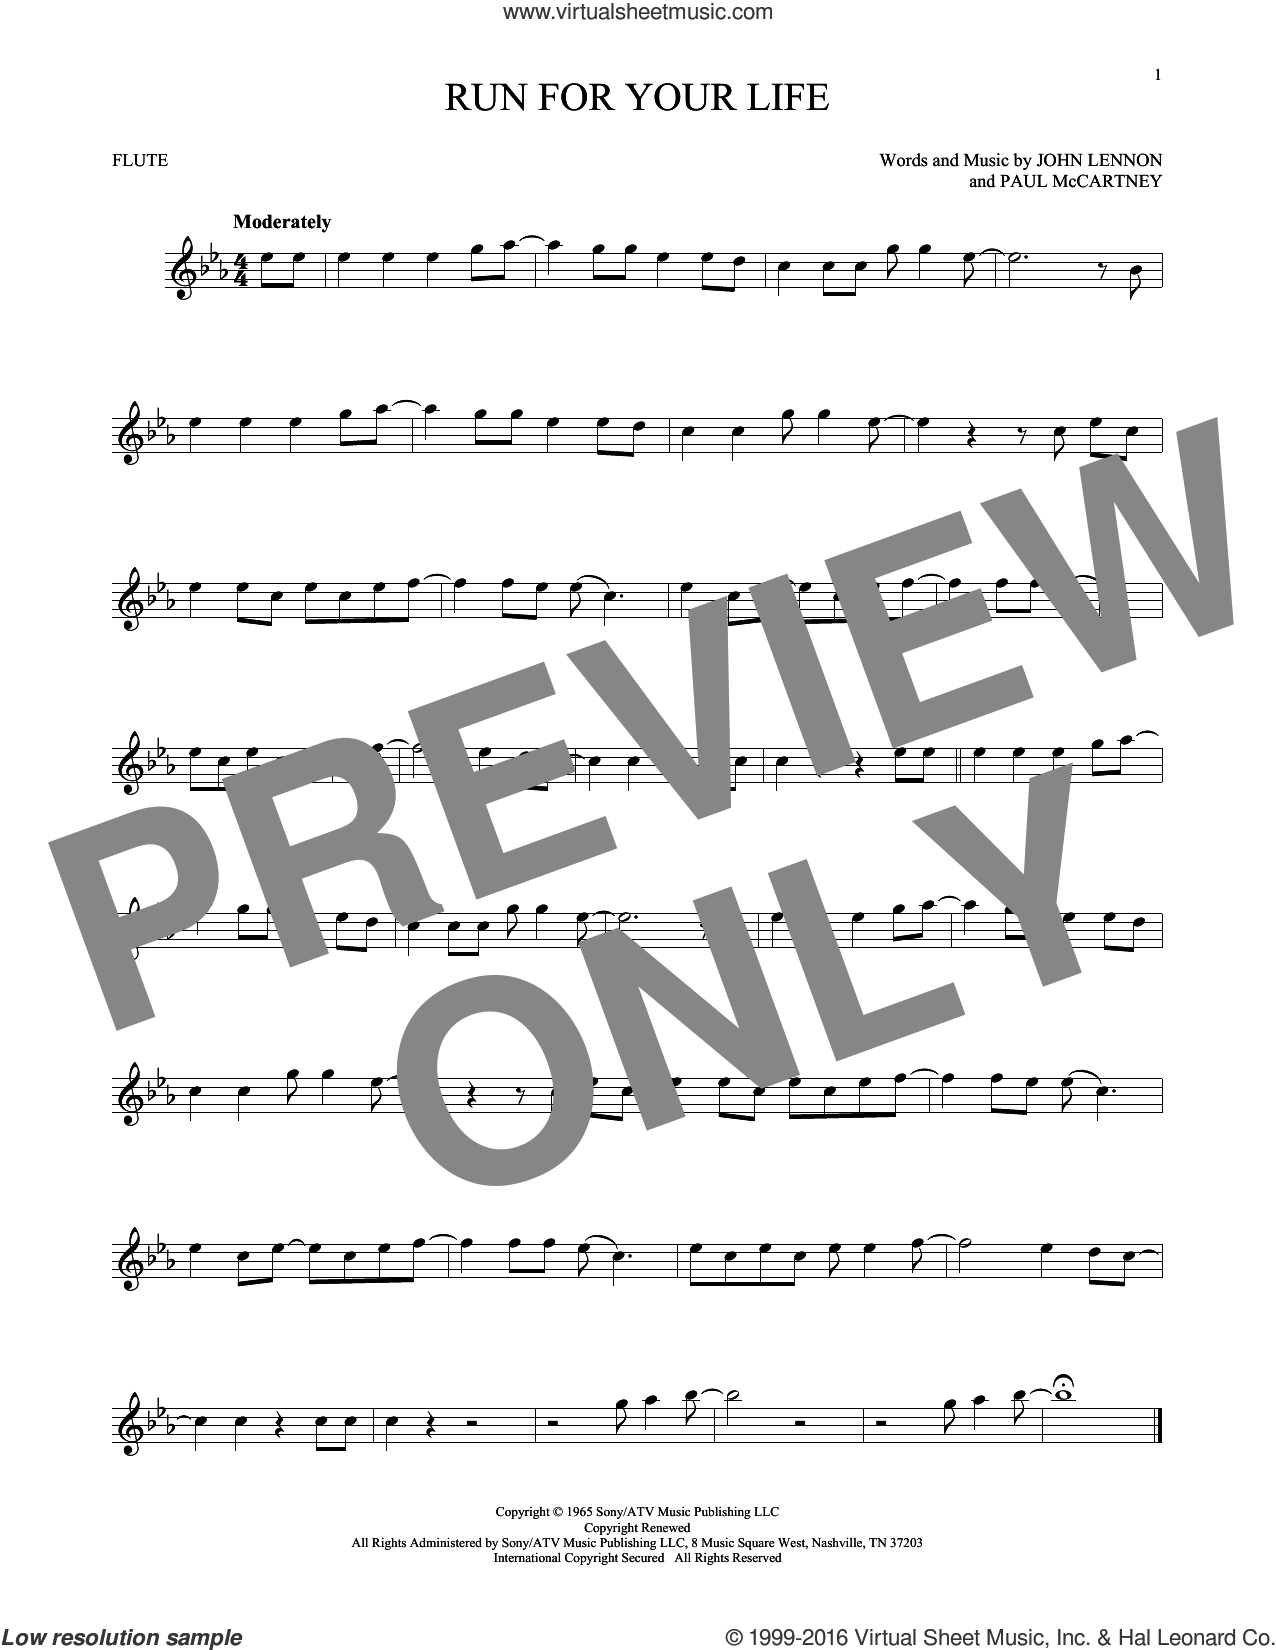 Run For Your Life sheet music for flute solo by The Beatles, John Lennon and Paul McCartney, intermediate skill level